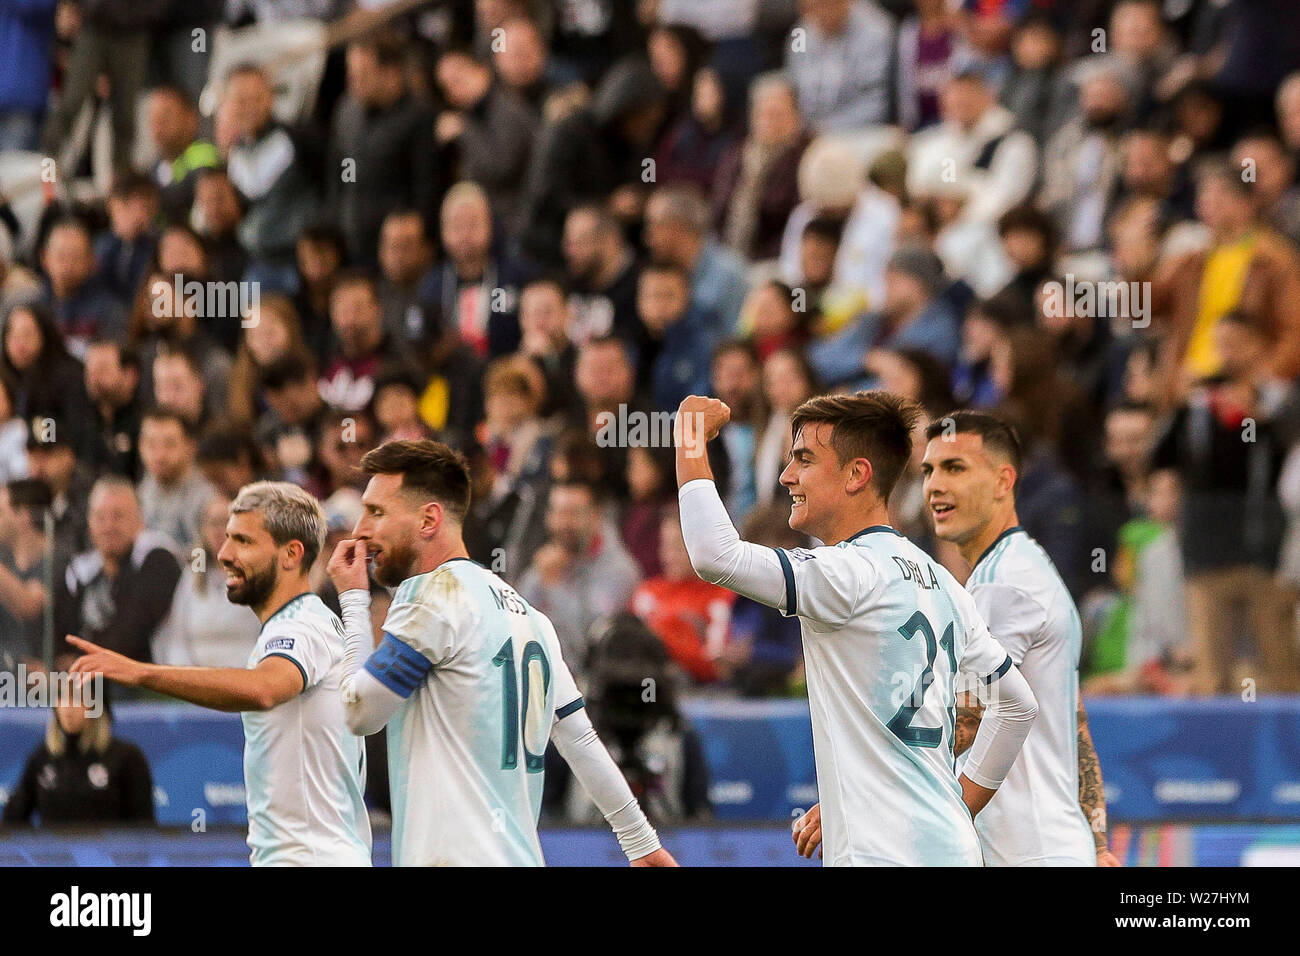 6th July 2019, Arena Corinthians Stadium, Sao Paulo, Brazil; Copa America international football, 3rd-4th playoff final, Argentina versus Chile; Paulo Dybala of Argentina celebrates his goal for 2-0 in minute 22 of the game - Stock Image